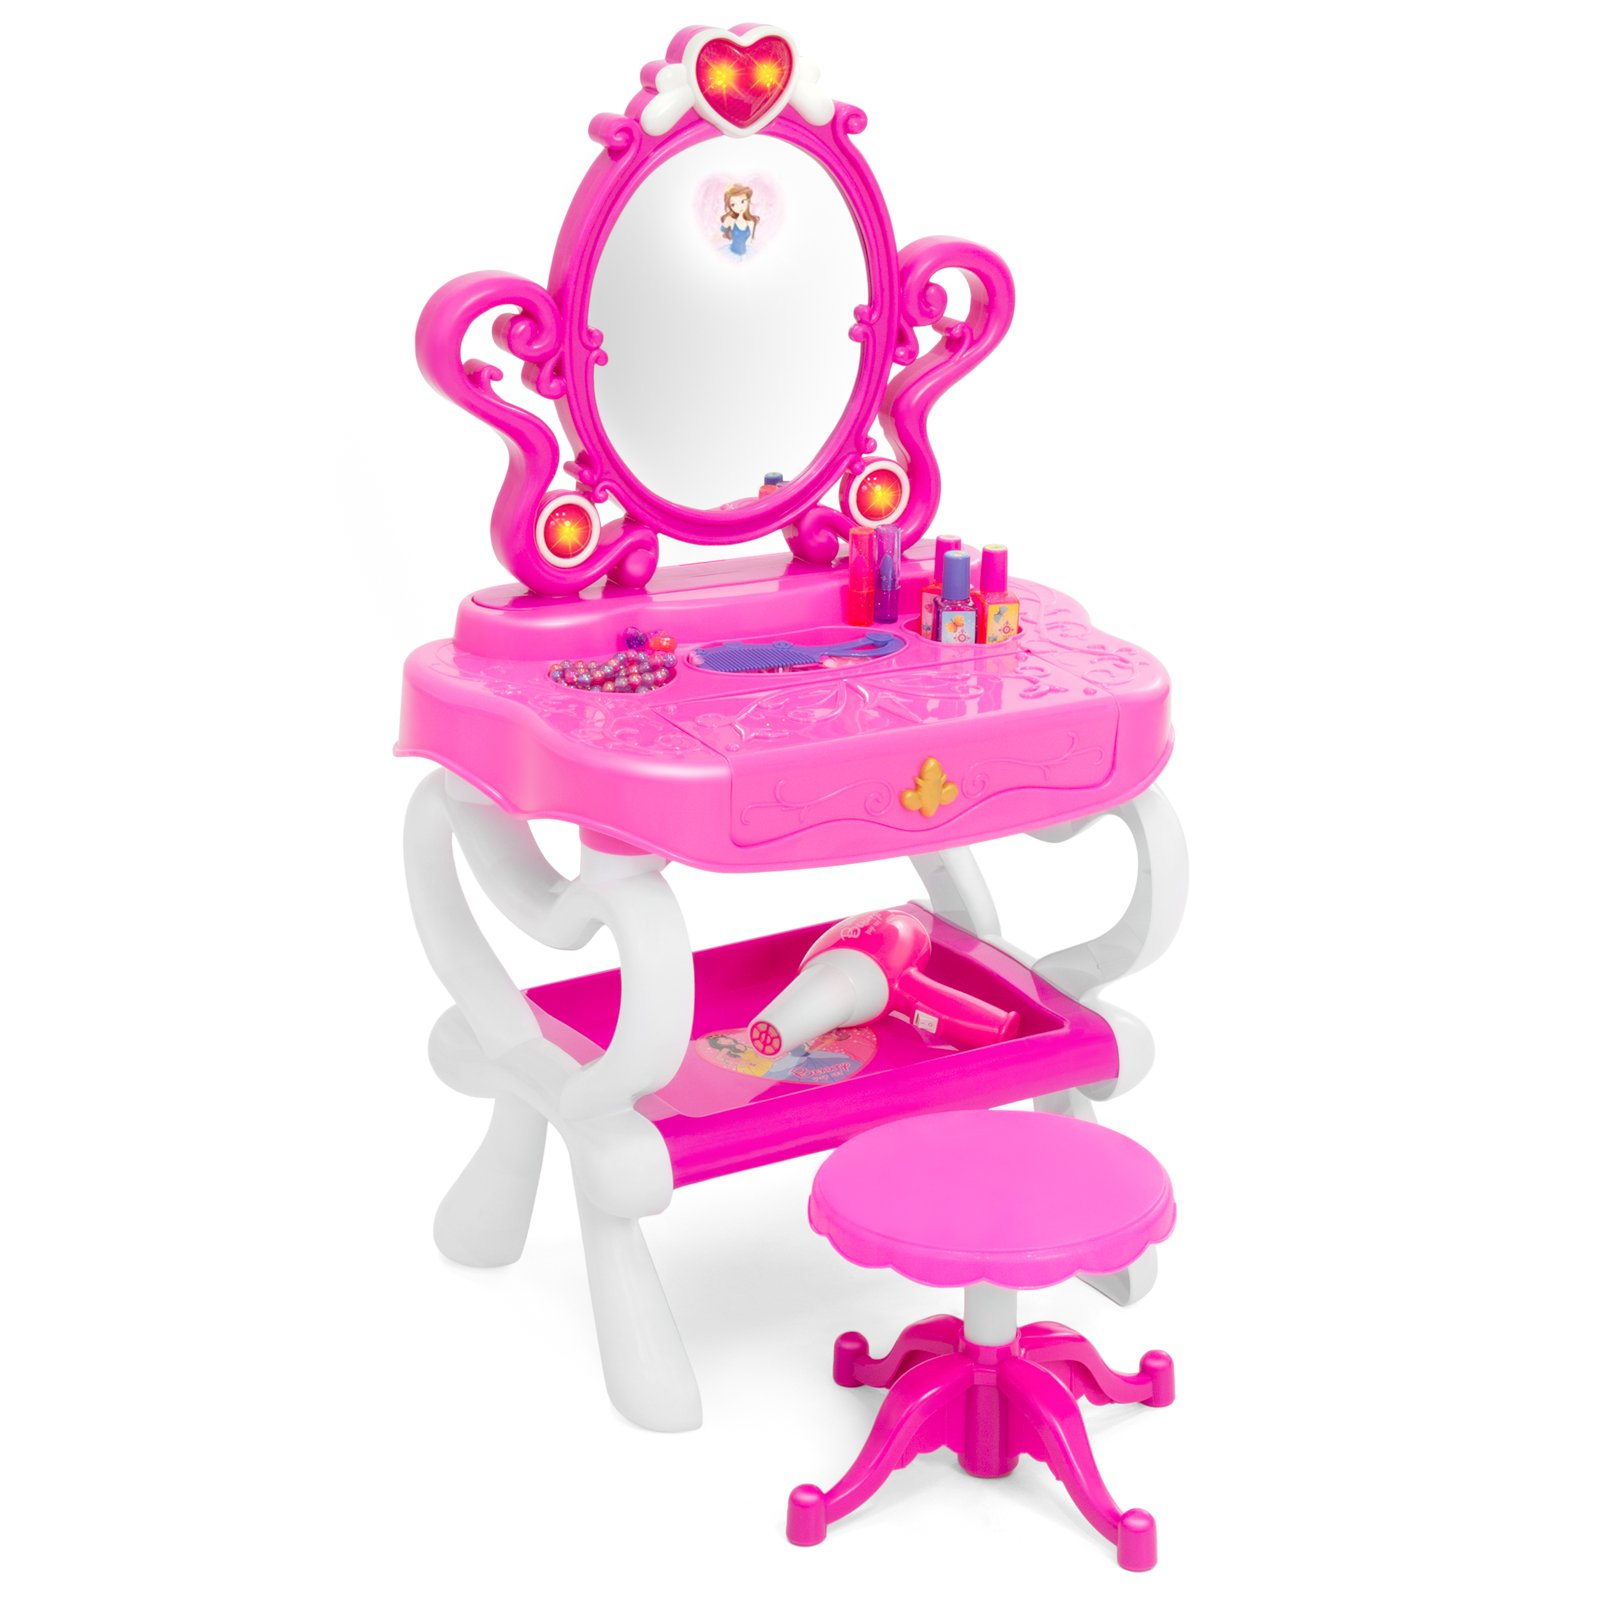 Best Choice Products Kids 2-in-1 Vanity Mirror and 18-Key Keyboard with Toy Hairdryer, Stool, Lights